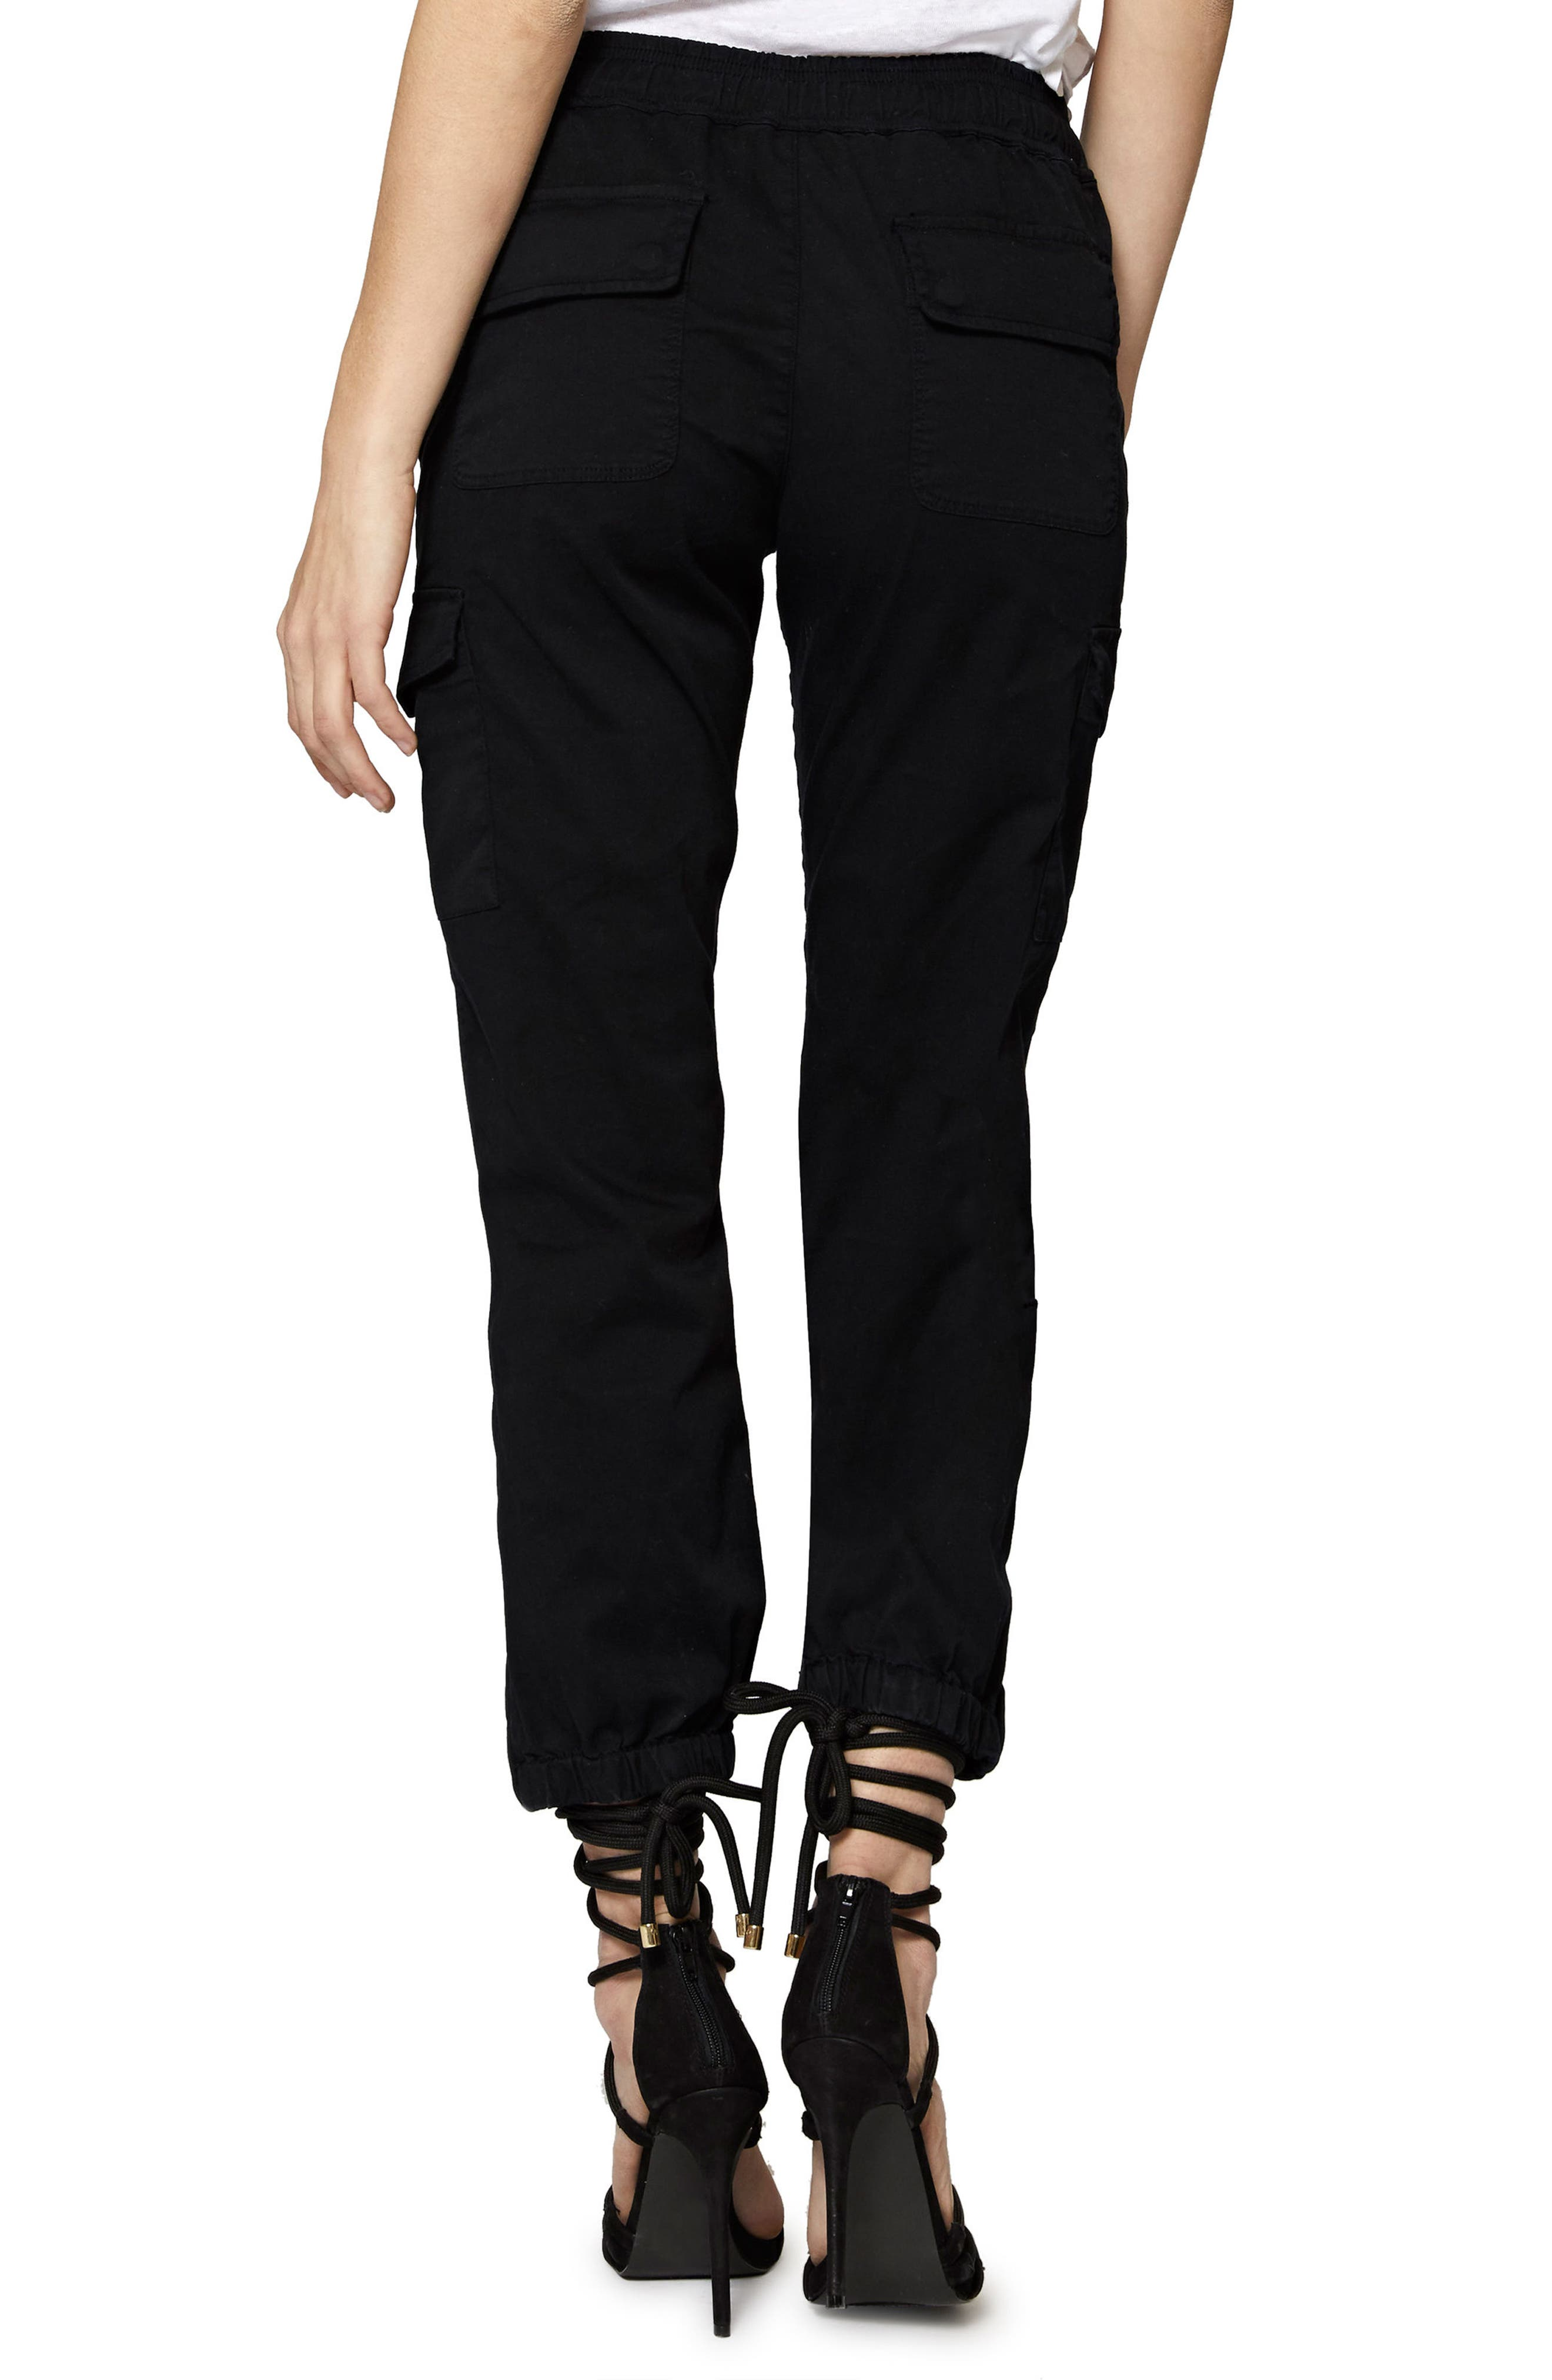 SANCTUARY, Drawstring Trooper Pants, Alternate thumbnail 2, color, BLACK